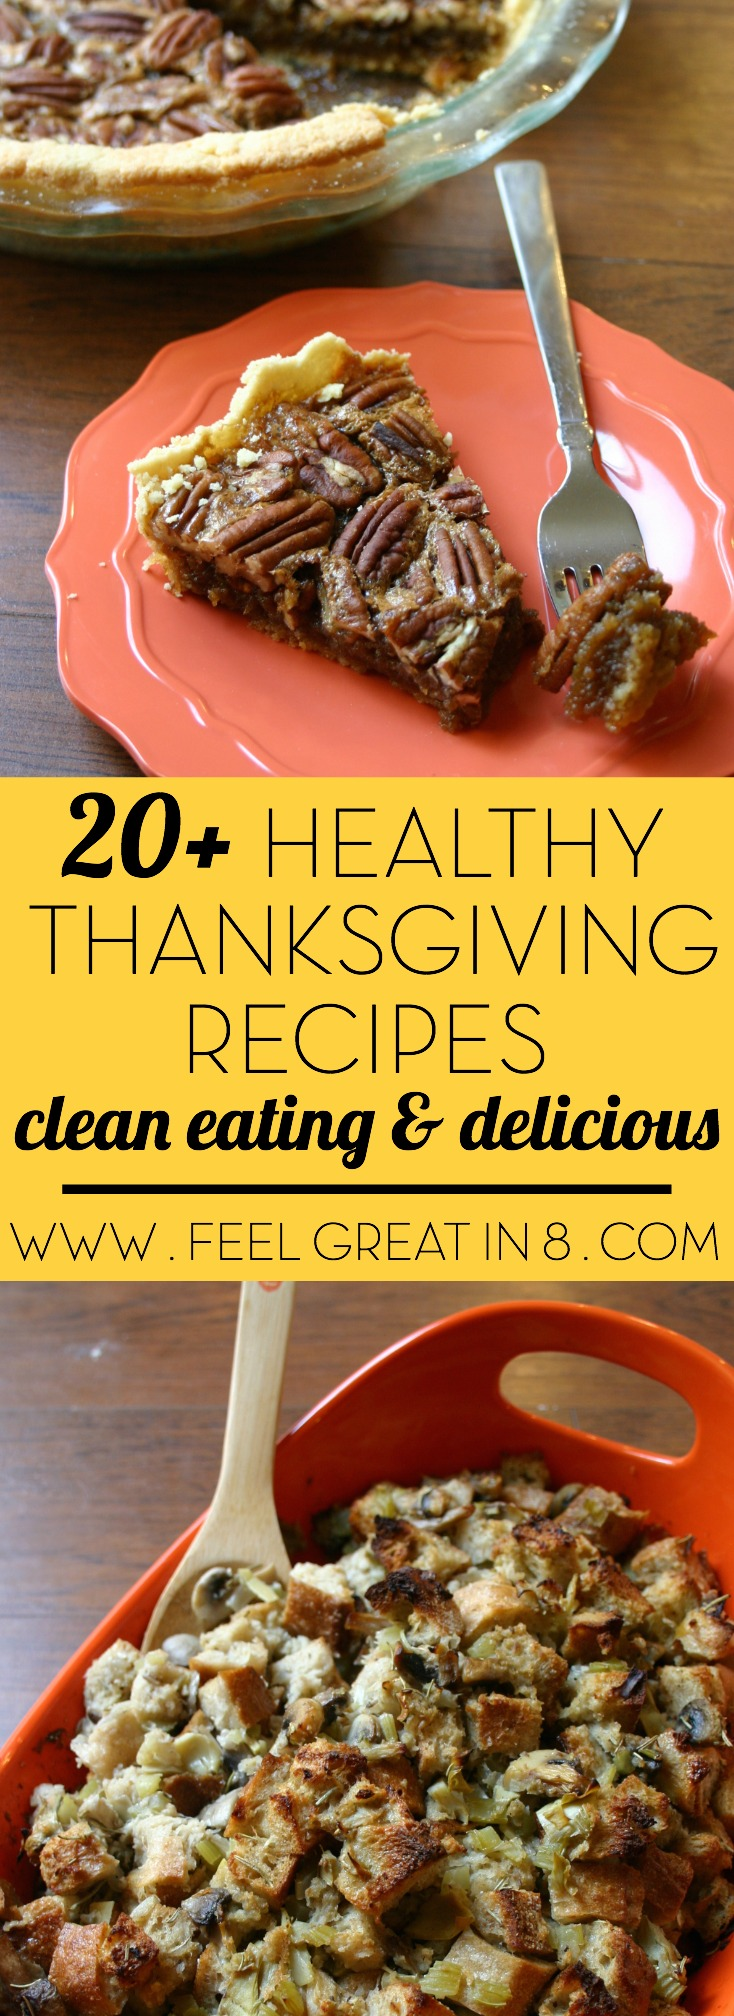 20 Healthy Thanksgiving Recipes - You don't have to eat perfectly on Thanksgiving, but adding some healthier, clean eating options to the menu will make it easier to stick to your healthy goals. | Feel Great in 8